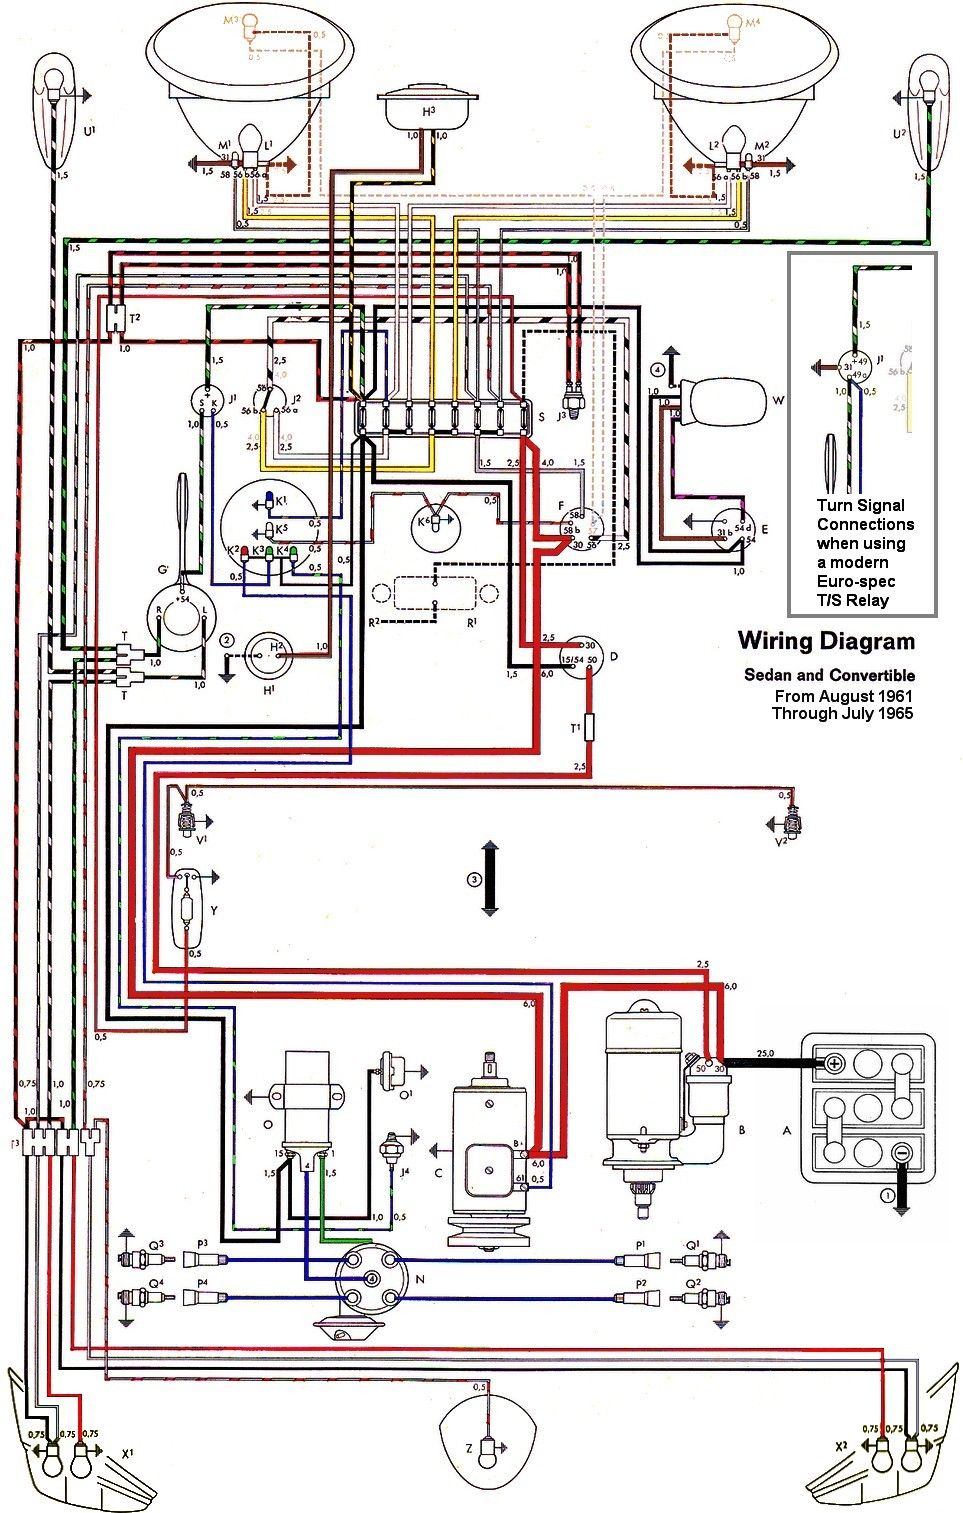 2235472c26e9b61112a110100d6ddea3 wiring diagram in color 1964 vw bug, beetle, convertible the Basic Electrical Wiring Diagrams at edmiracle.co